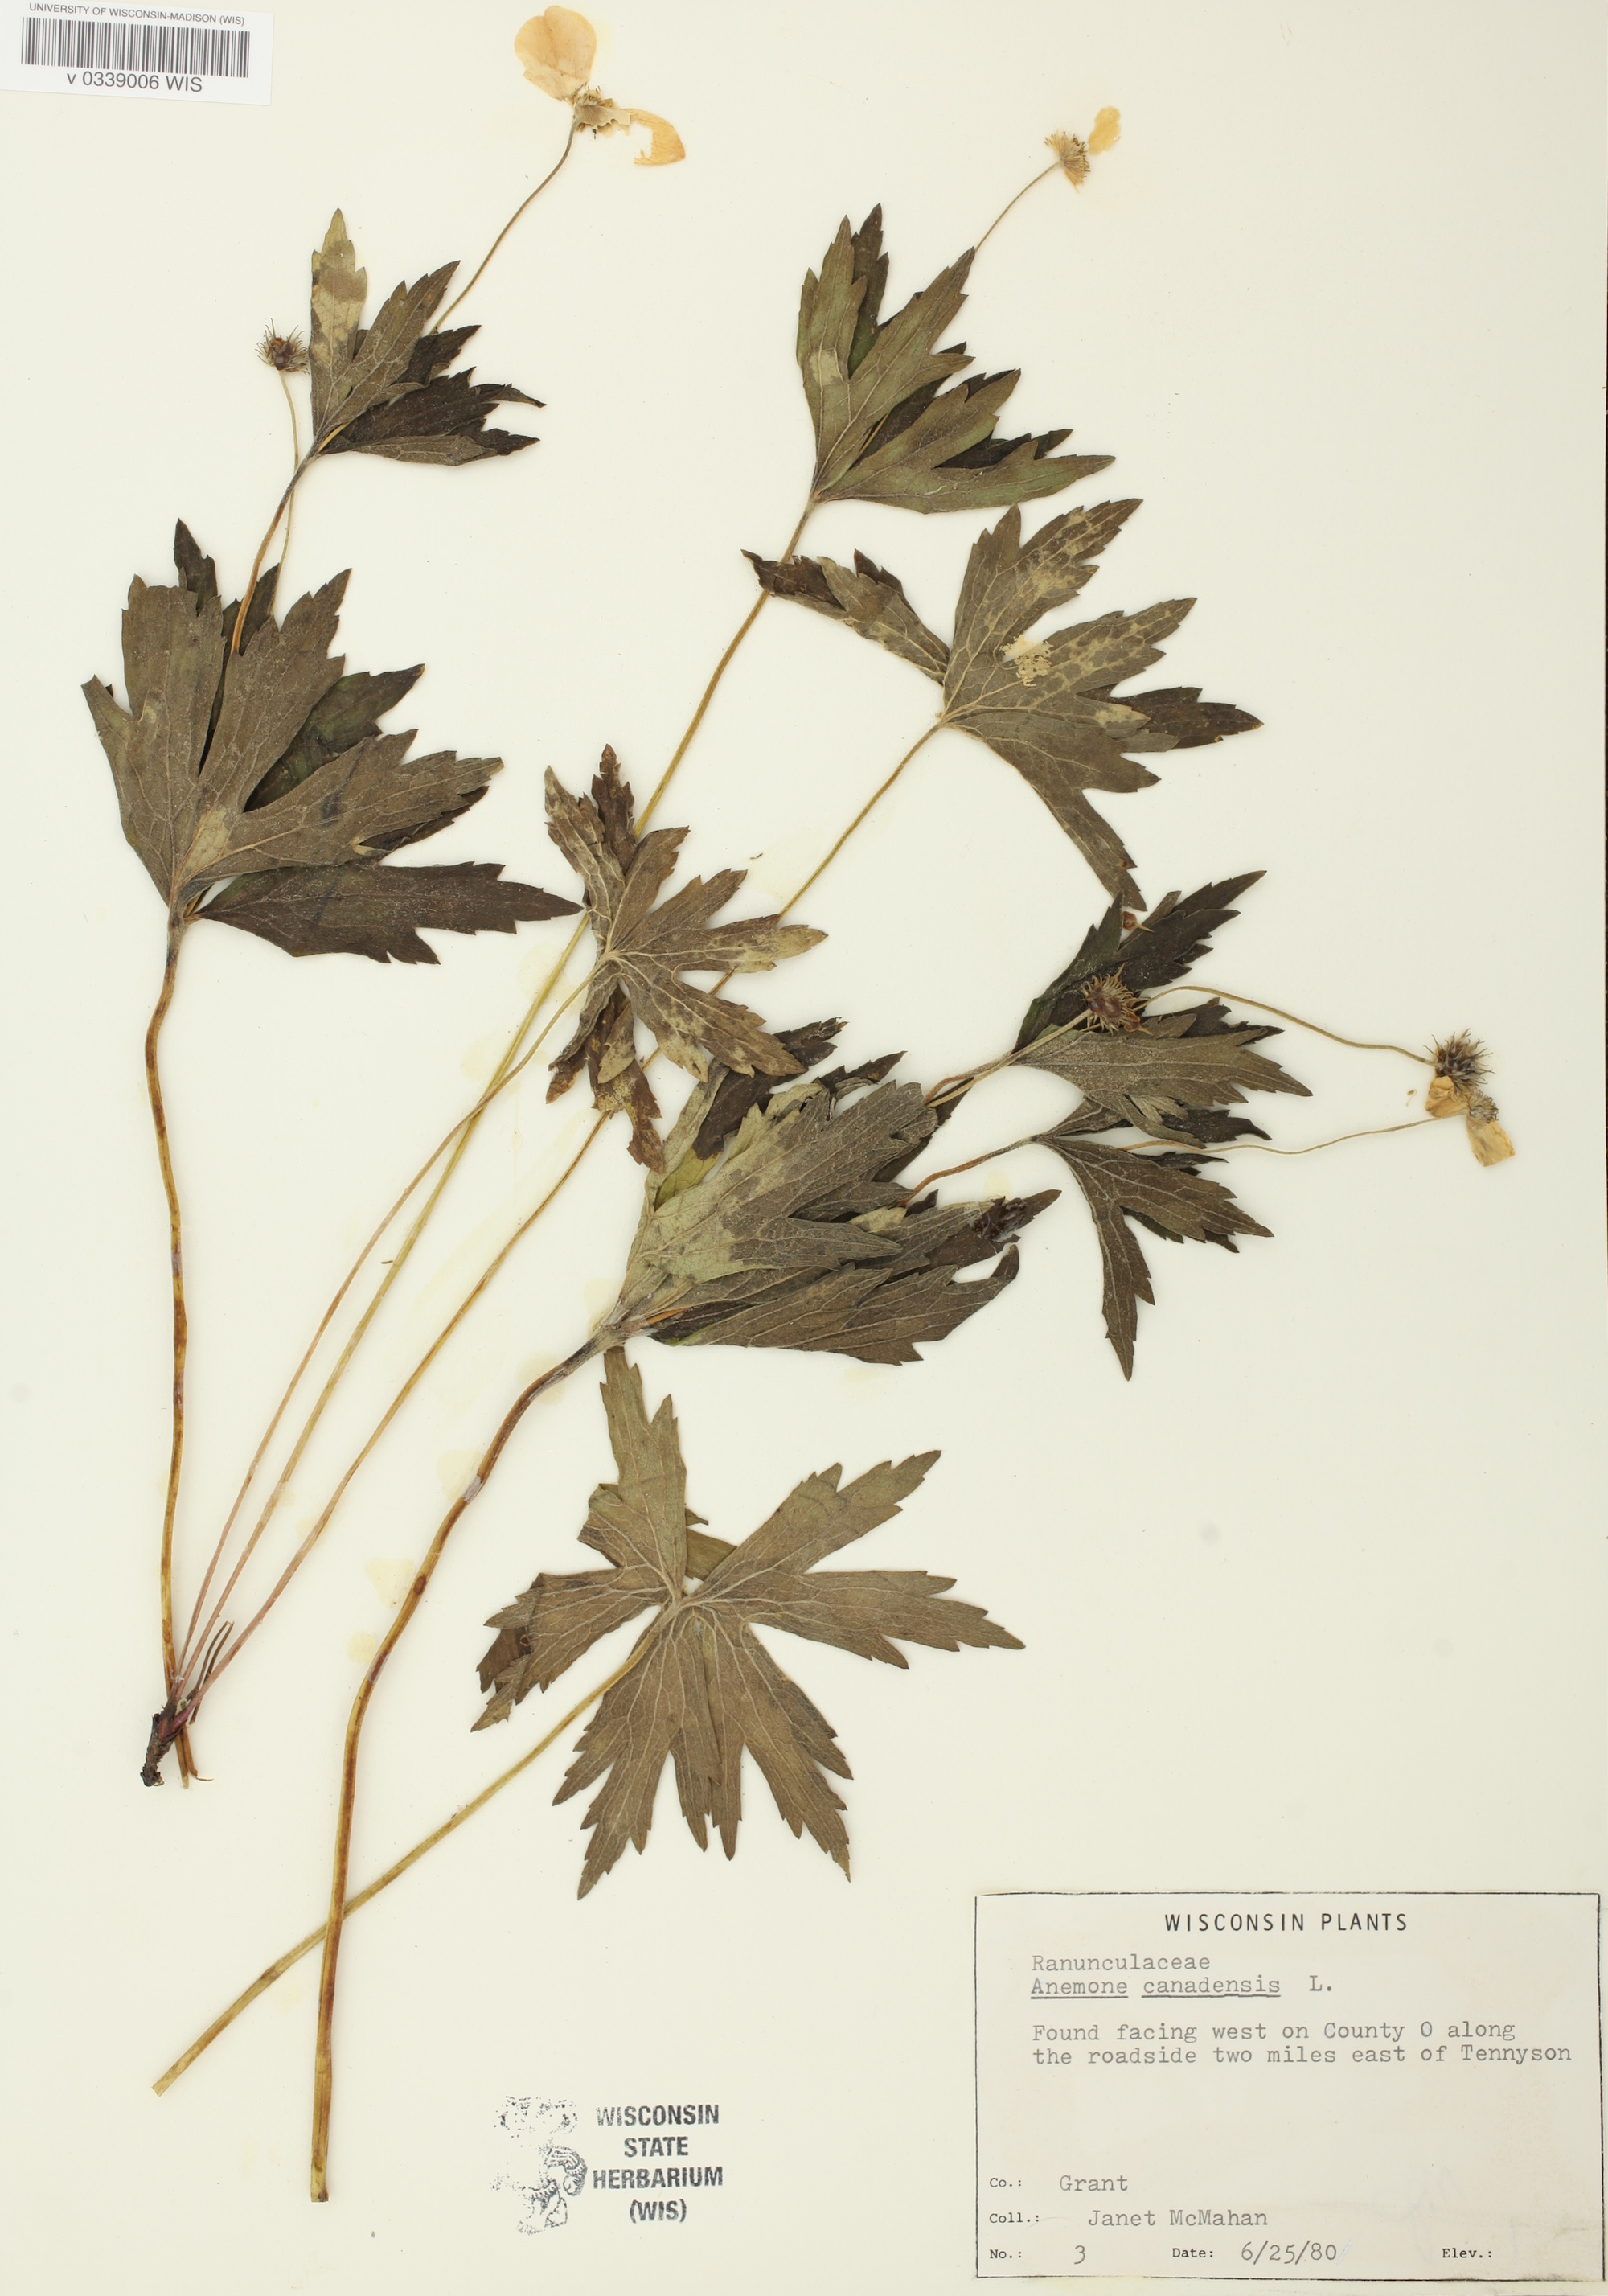 Specimen photo of Anemone canadensis that was collected two miles east of Tenneyson, Wisconsin.